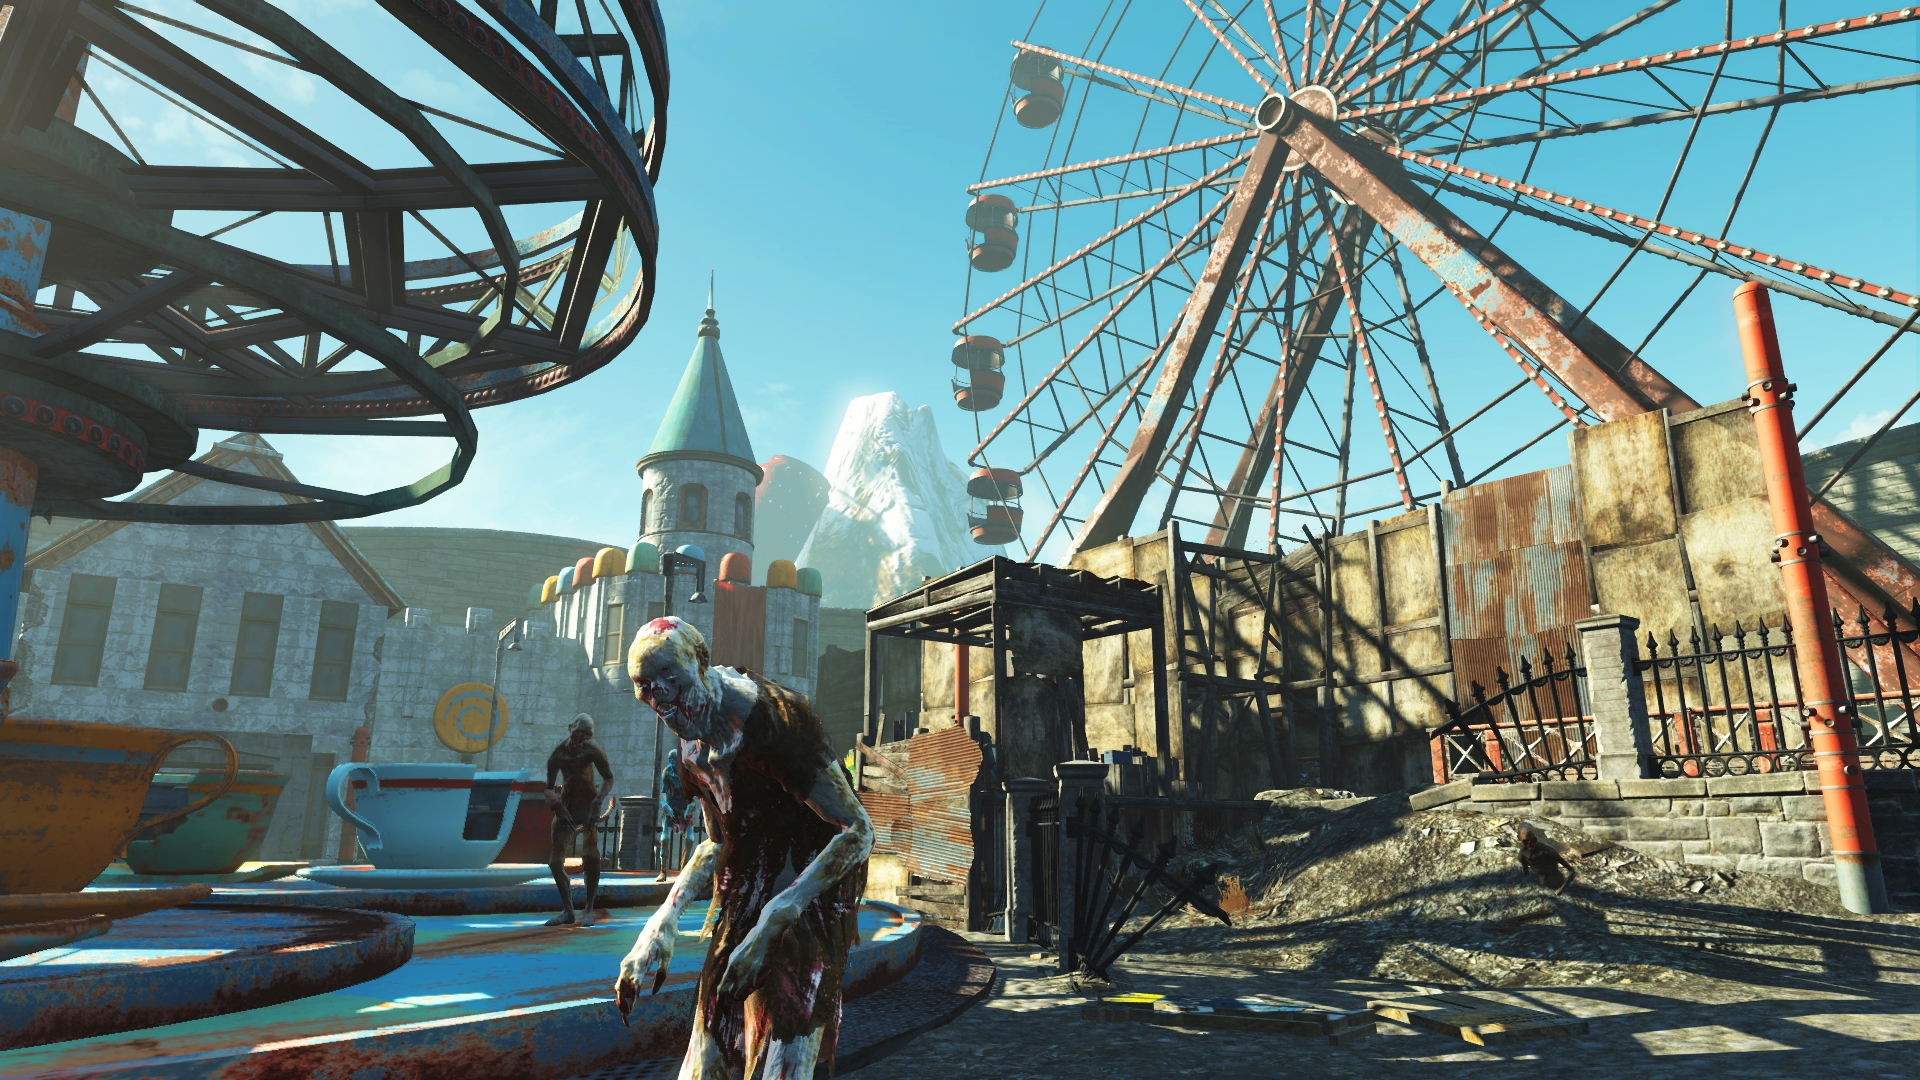 Fallout-4-nuka-world-screenshot- (4)